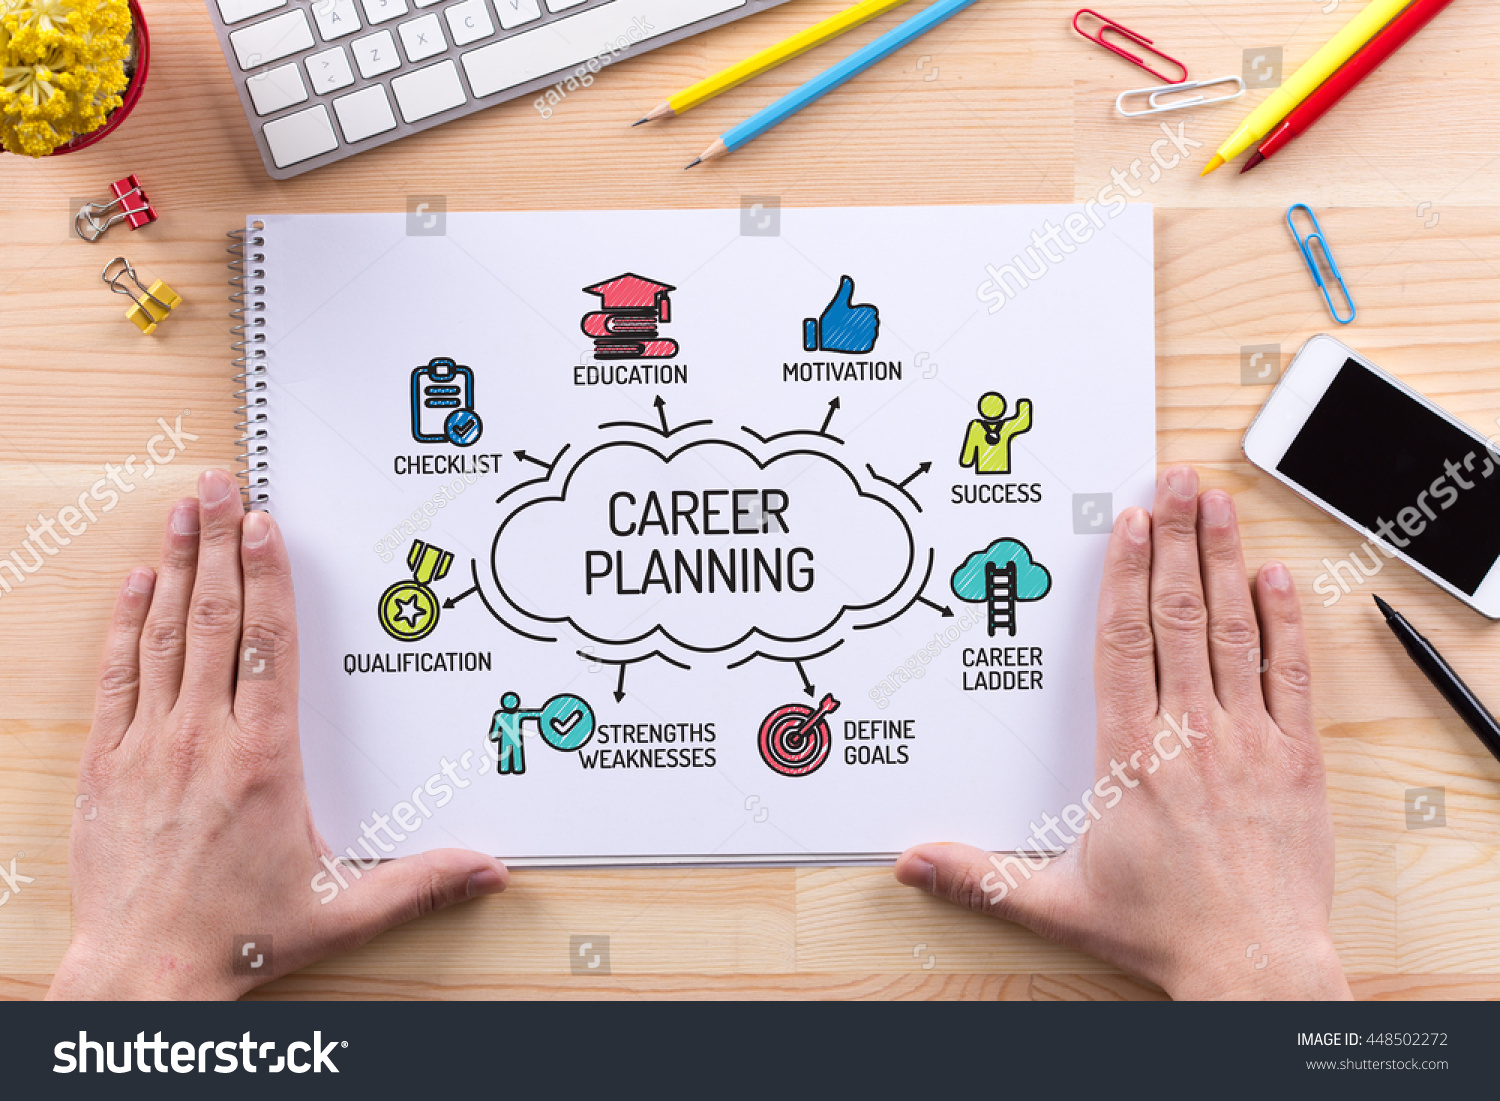 career planning chart keywords and sketch icons stock photo save to a lightbox